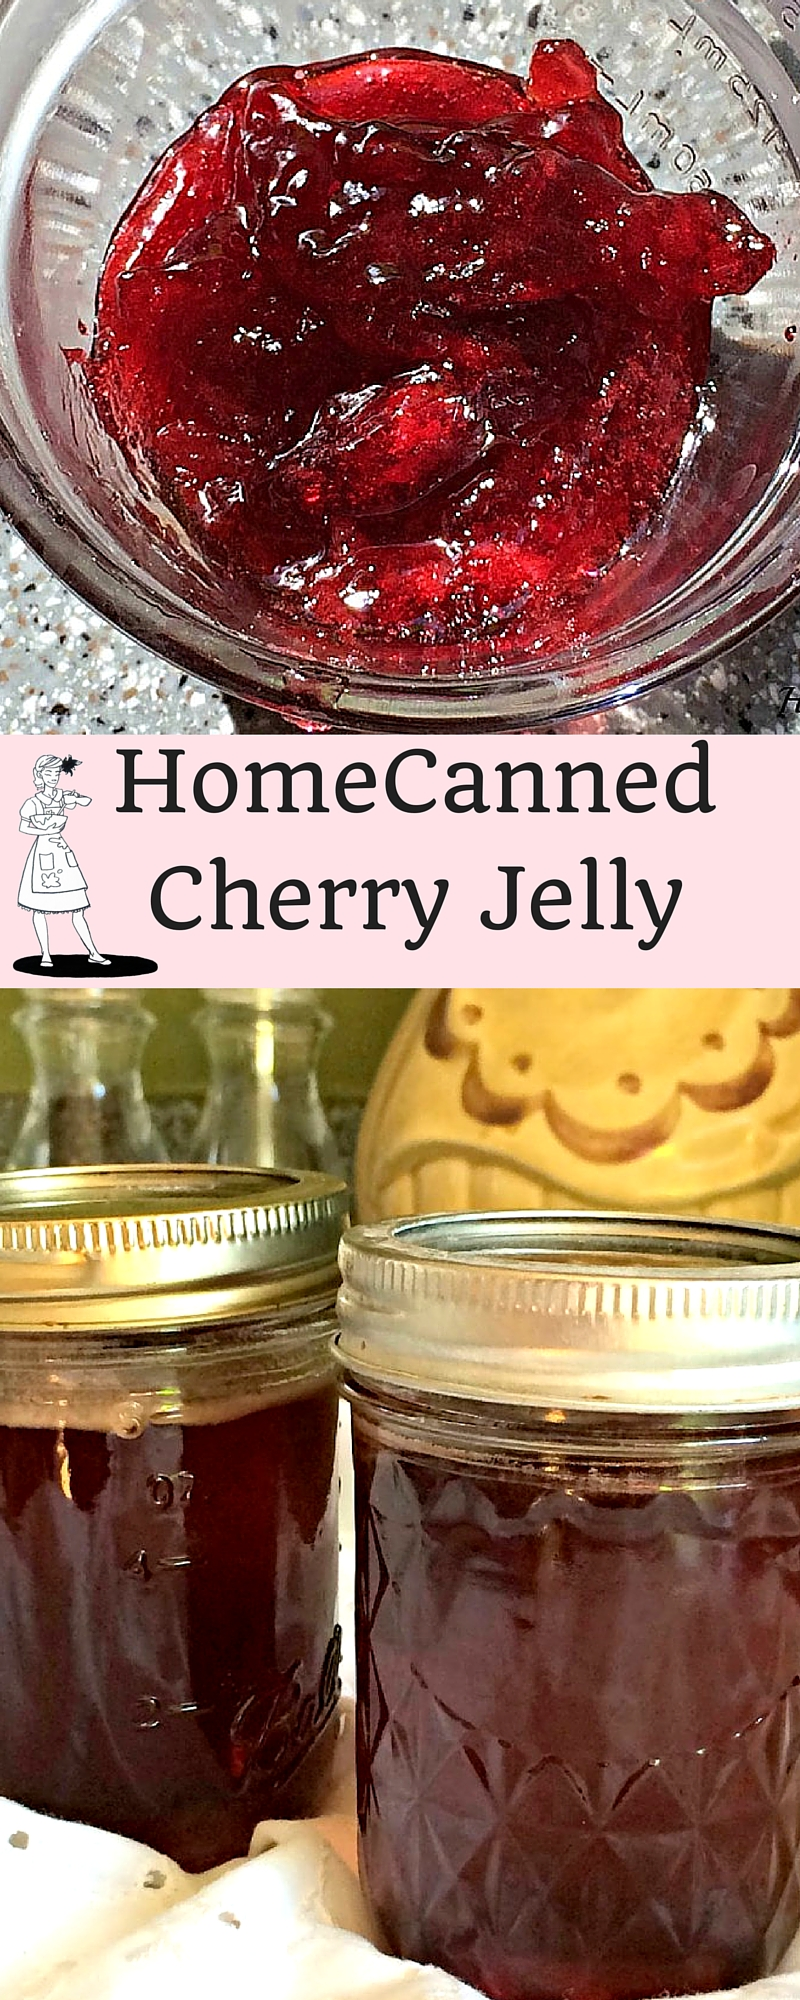 Home Canned Cherry Jelly. Spread it on toast, or pour it over your Sunday Roast. However you serve it, you'll love having this stocked in your pantry.